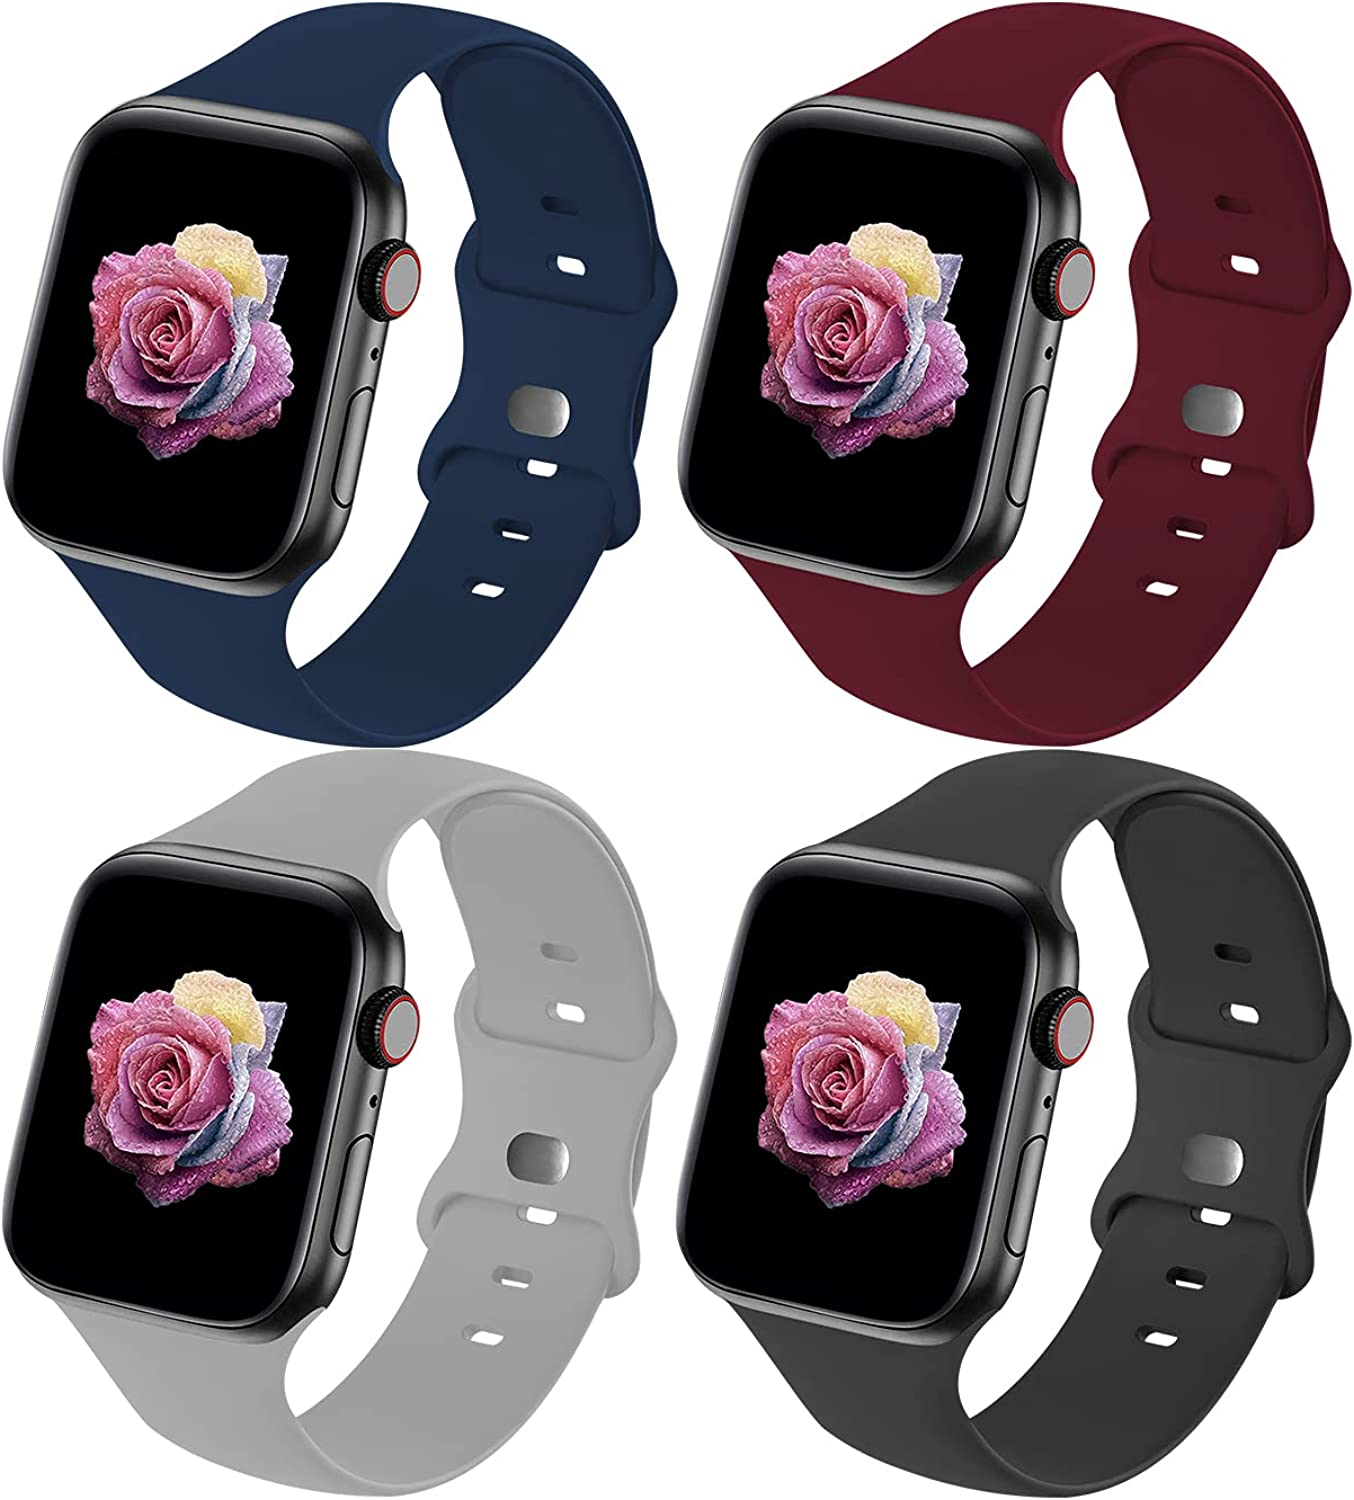 Crefort Sport Band Compatible with Apple Watch Bands 38mm 40mm 42mm 44mm for Women Men,Soft Silicone Sport Replacement Strap Accessory Compatible for iWatch Wristbands Series 6/3/5/SE/4/2/1 S/M M/L